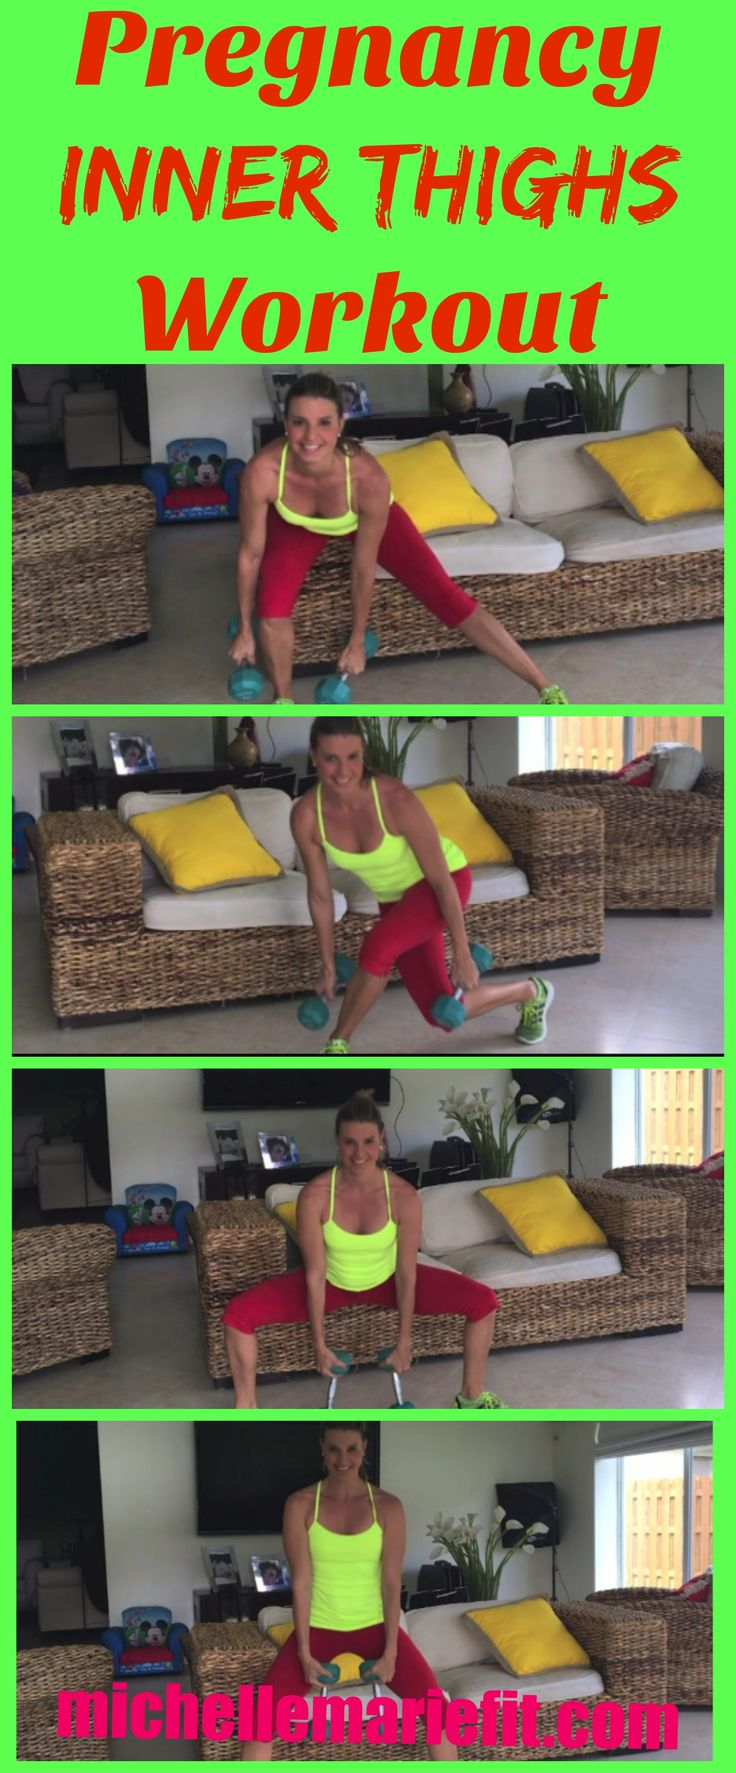 3 Exercise Pregnancy Circuit for the Inner Thighs.  15 Minute Workout, no gym required.